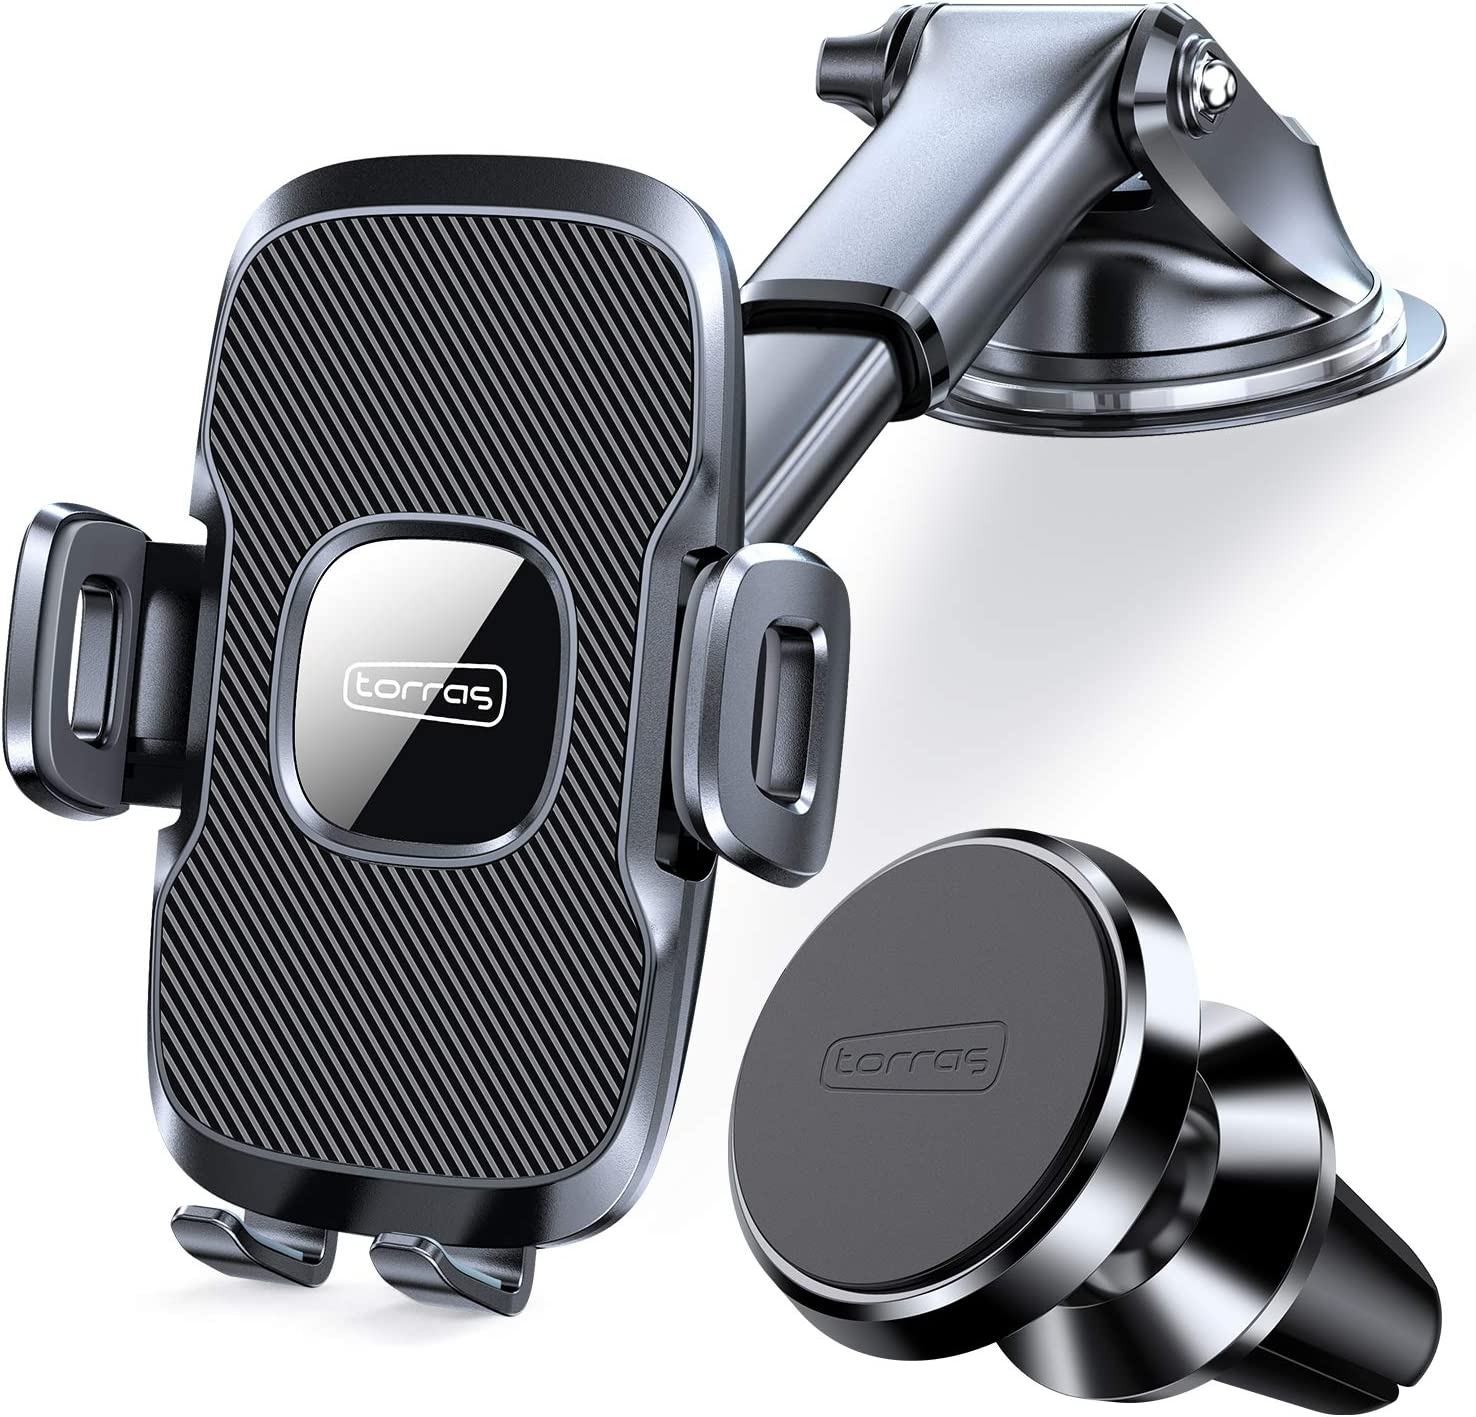 TORRAS Cell Phone Holder for Car + Magnetic Car Phone Mount for Air Vent